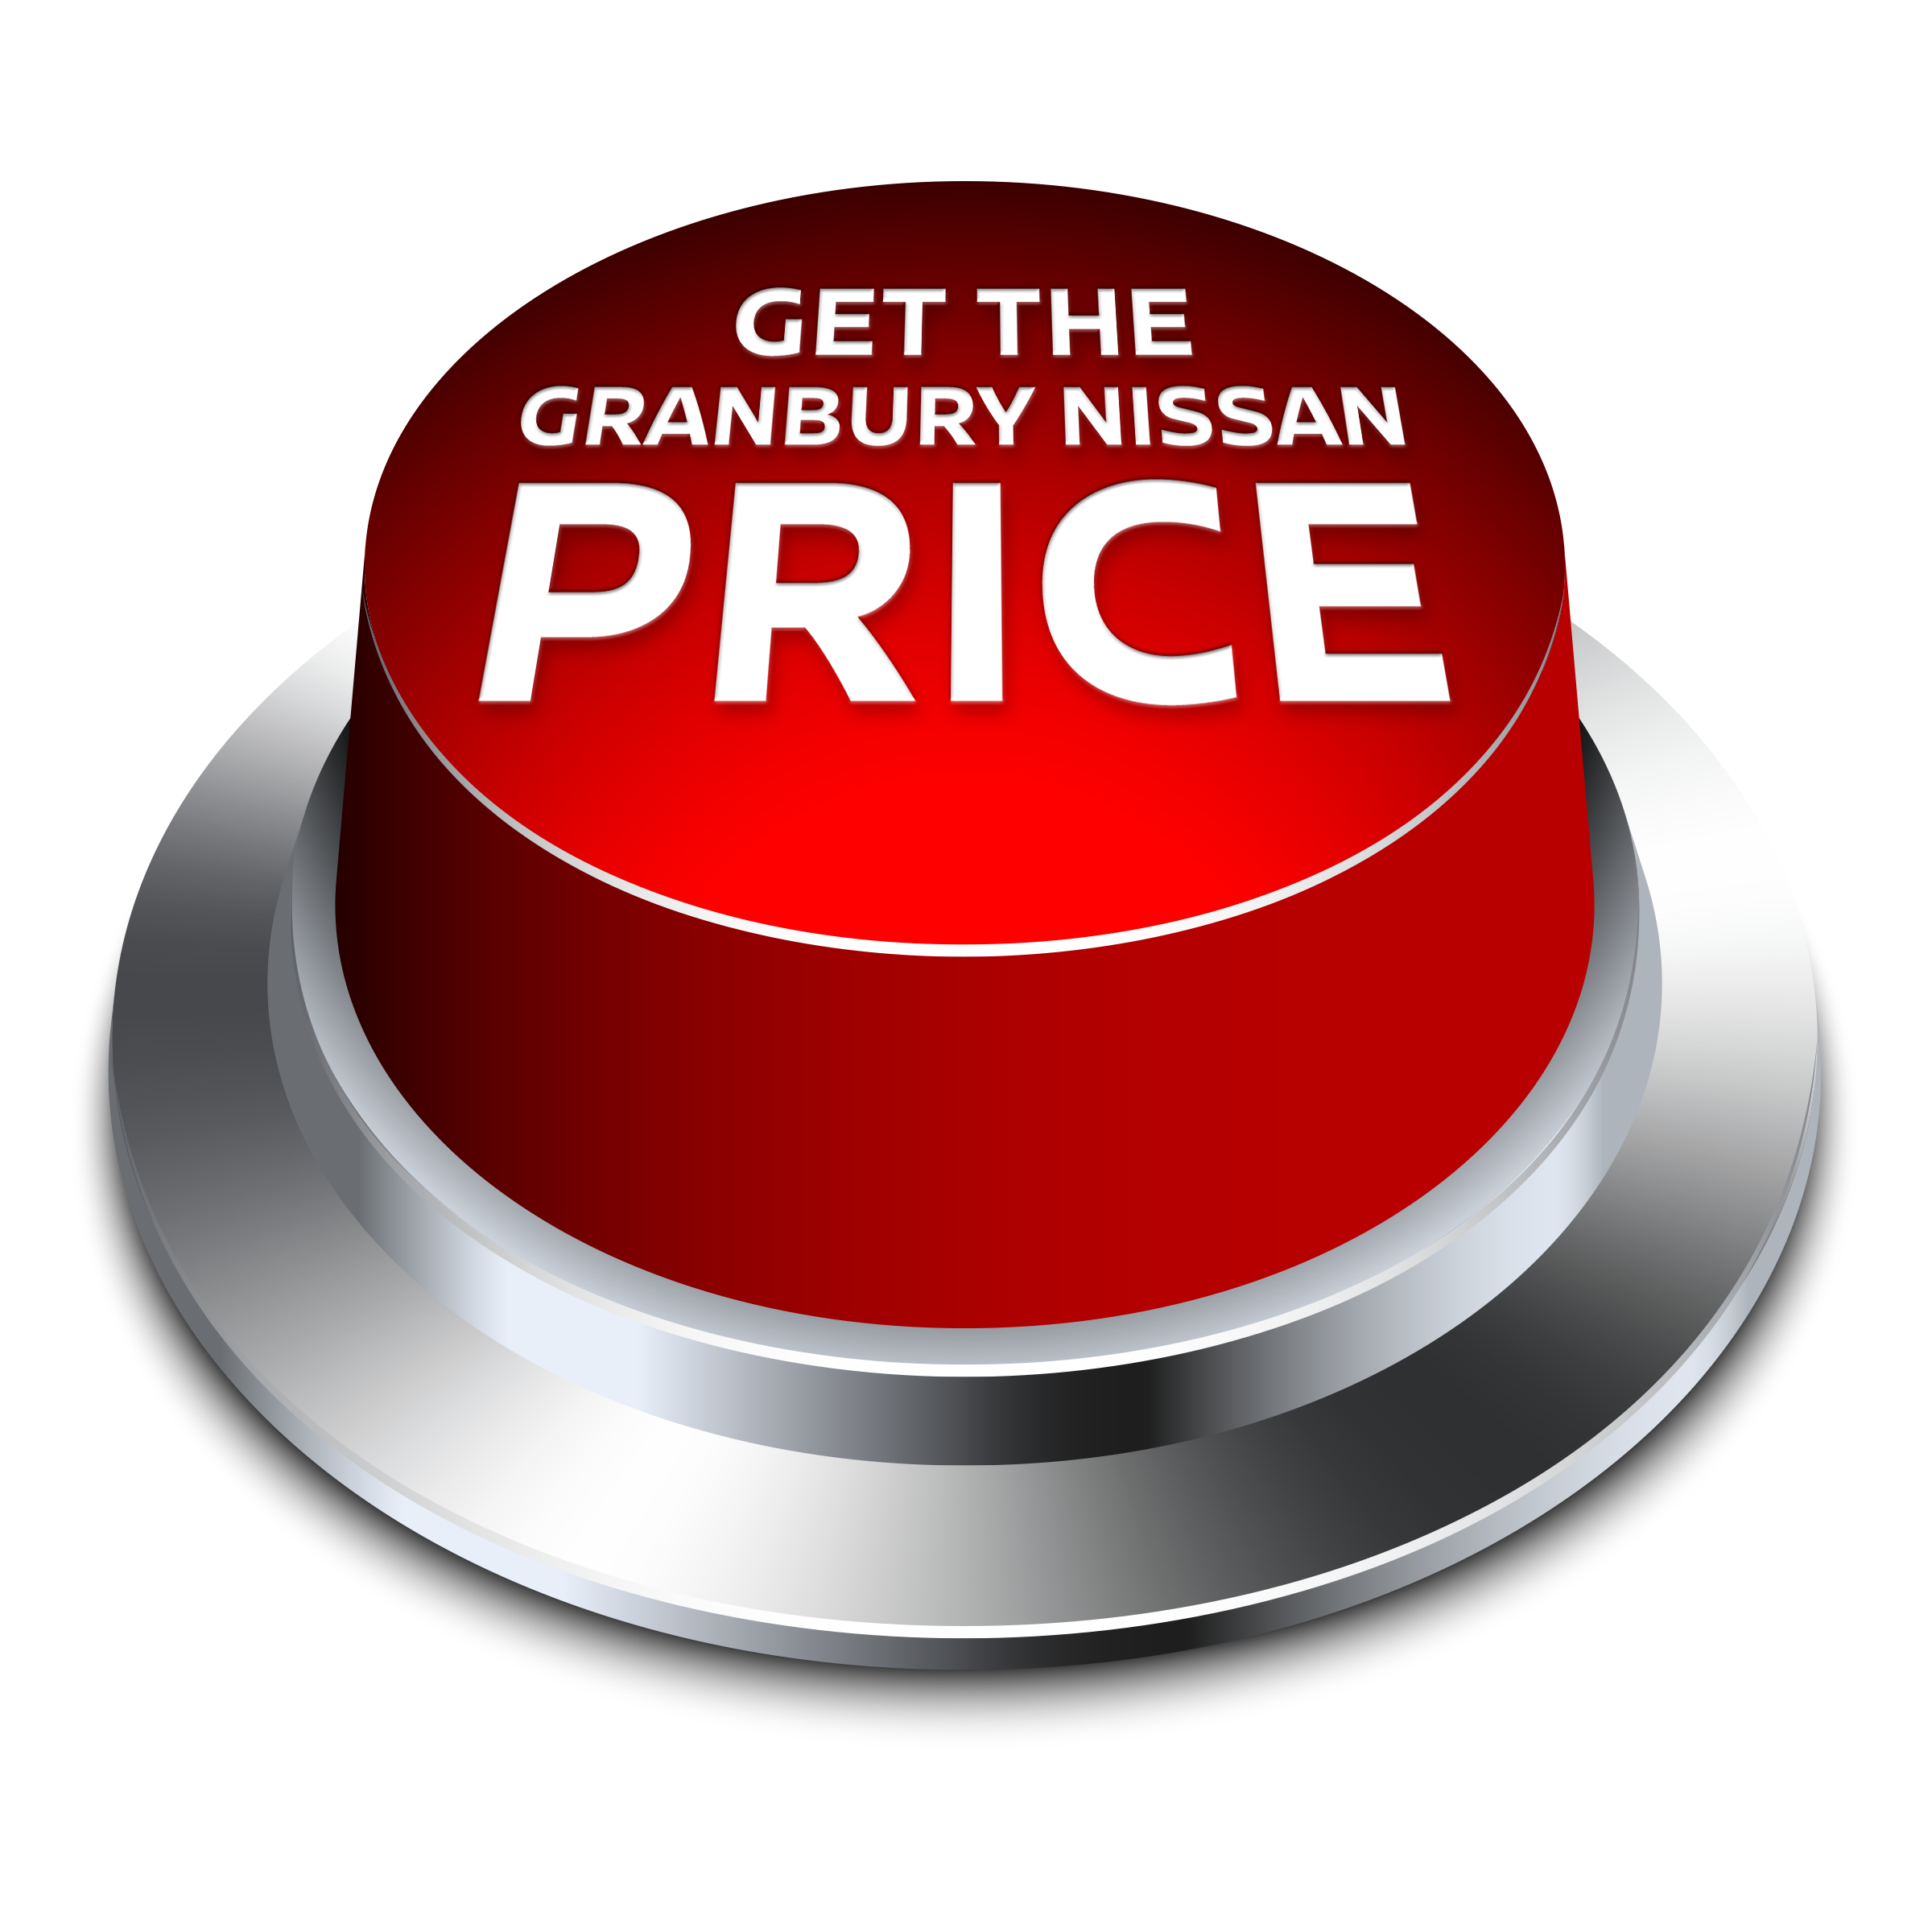 Get Price for this 2015 Nissan Sentra SR 4dr Car